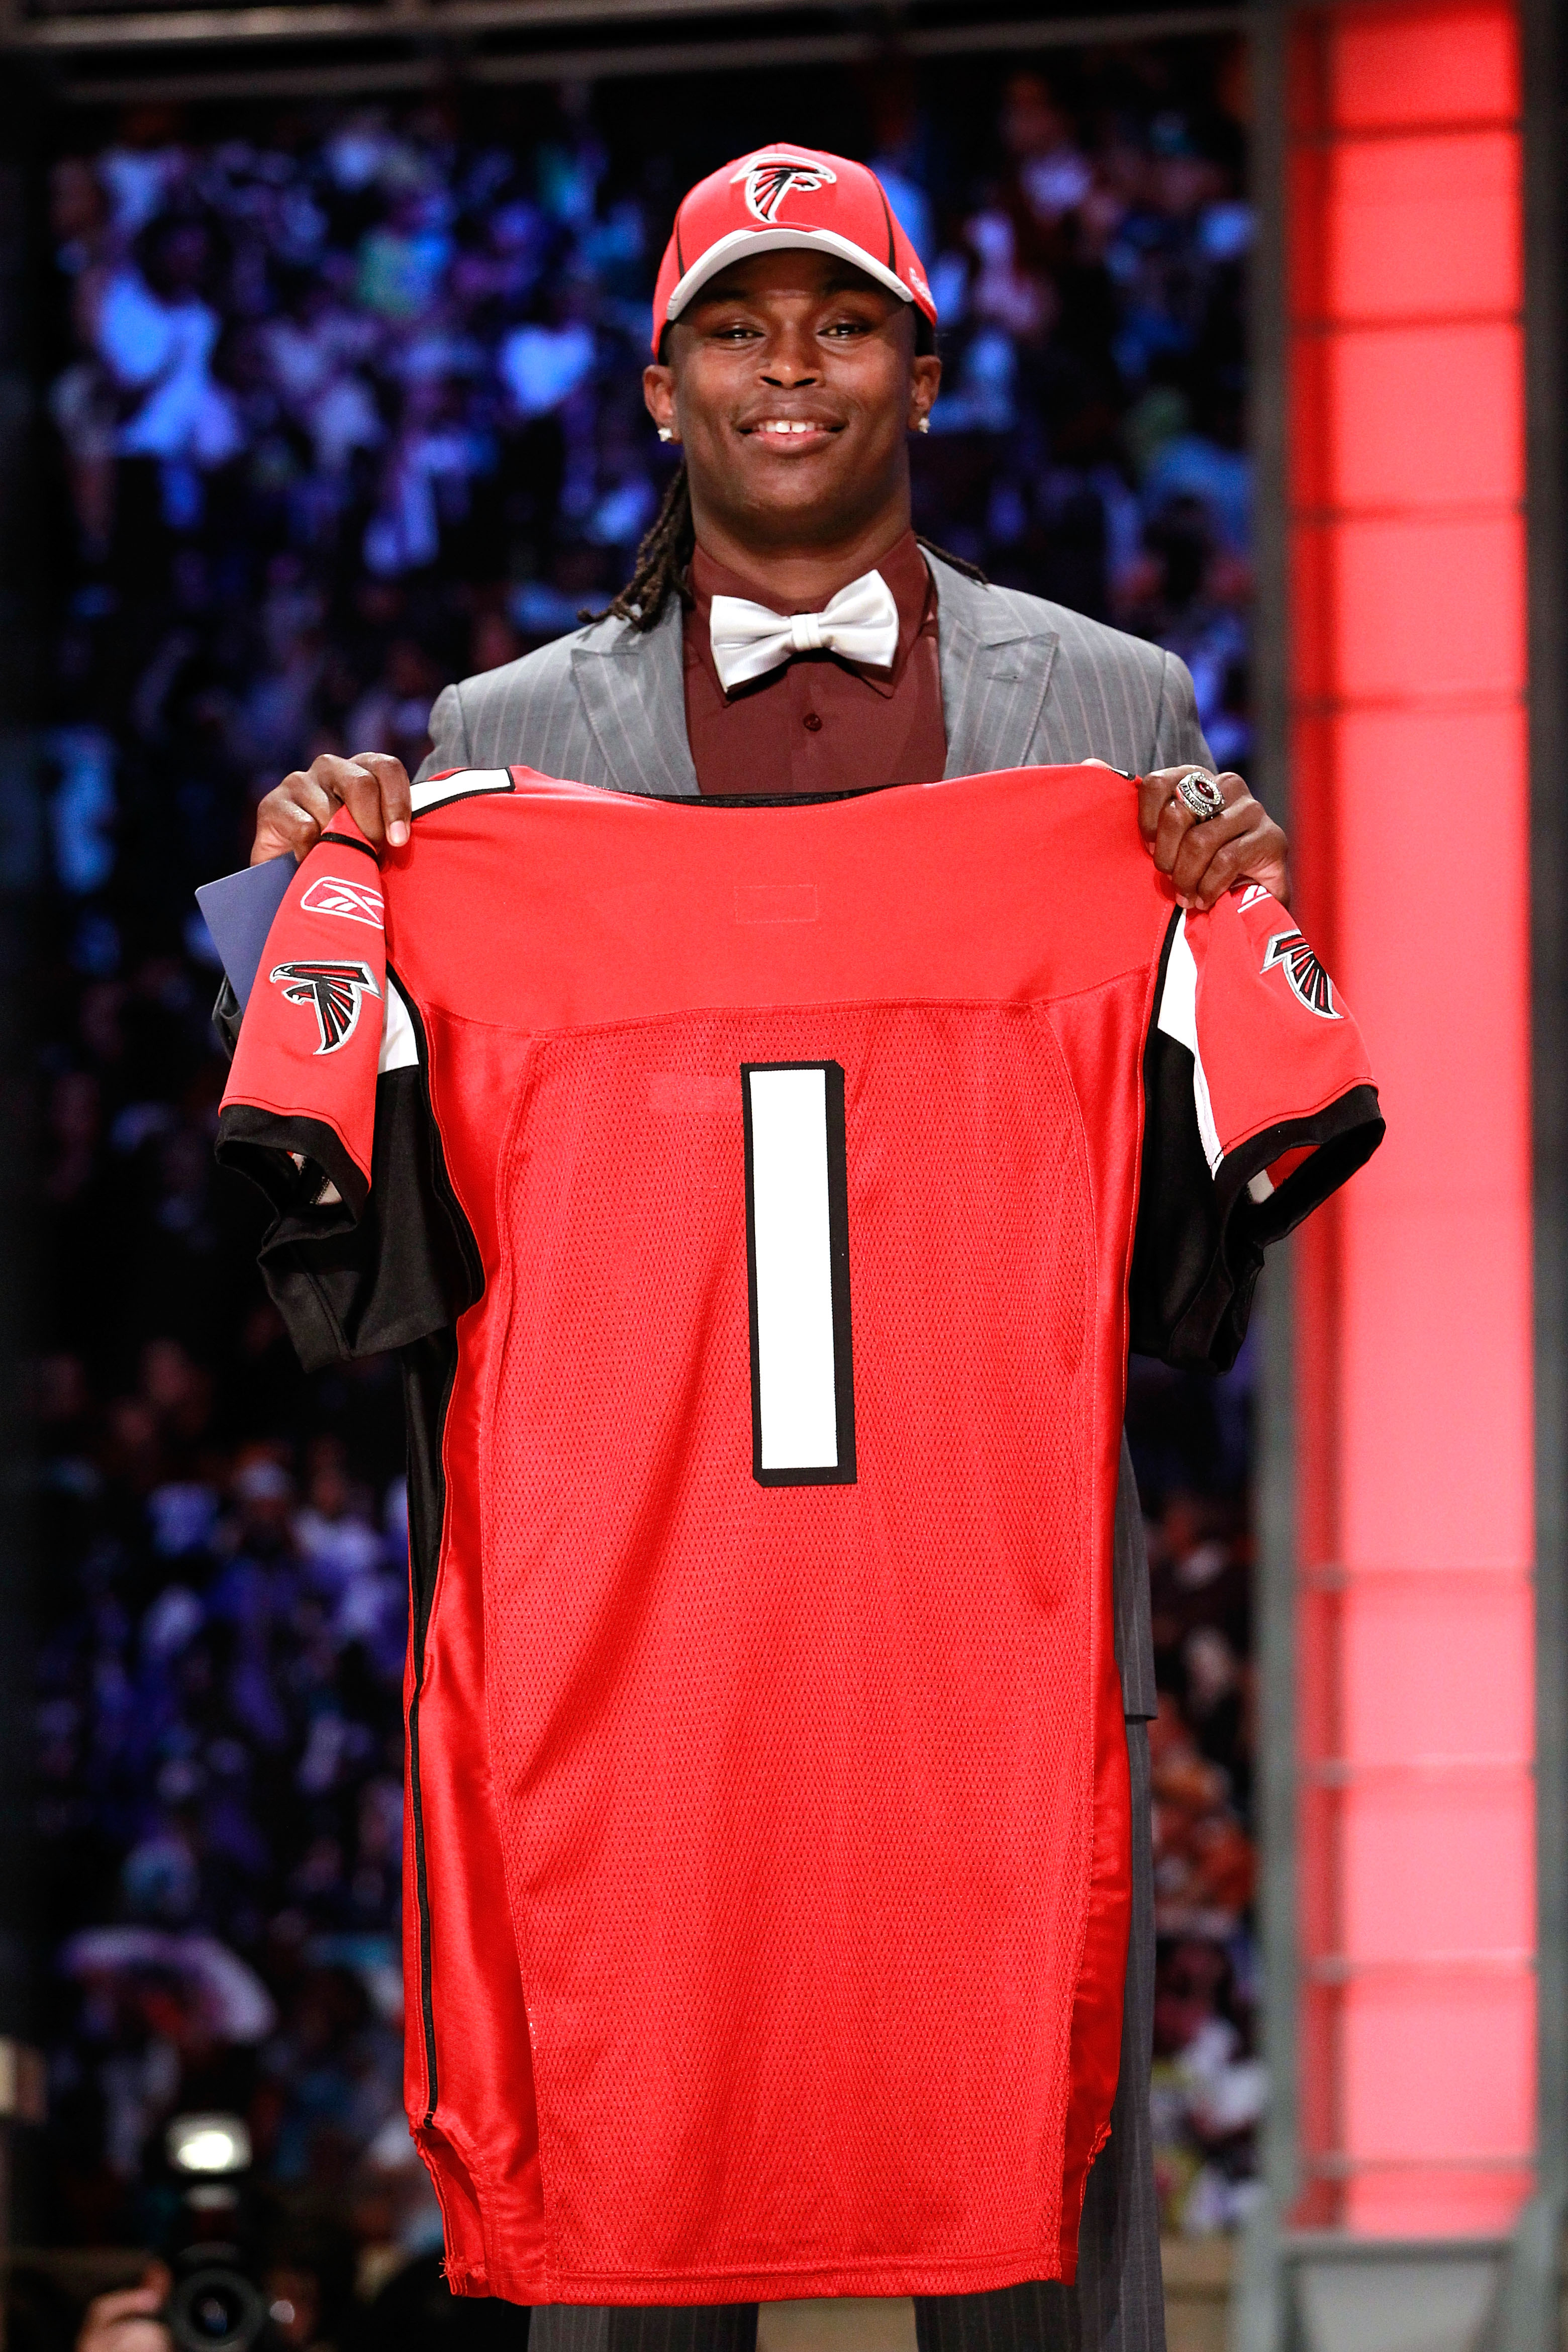 Julio Jones was talented enough for the Falcons to nearly trade away their entire draft just to get him.